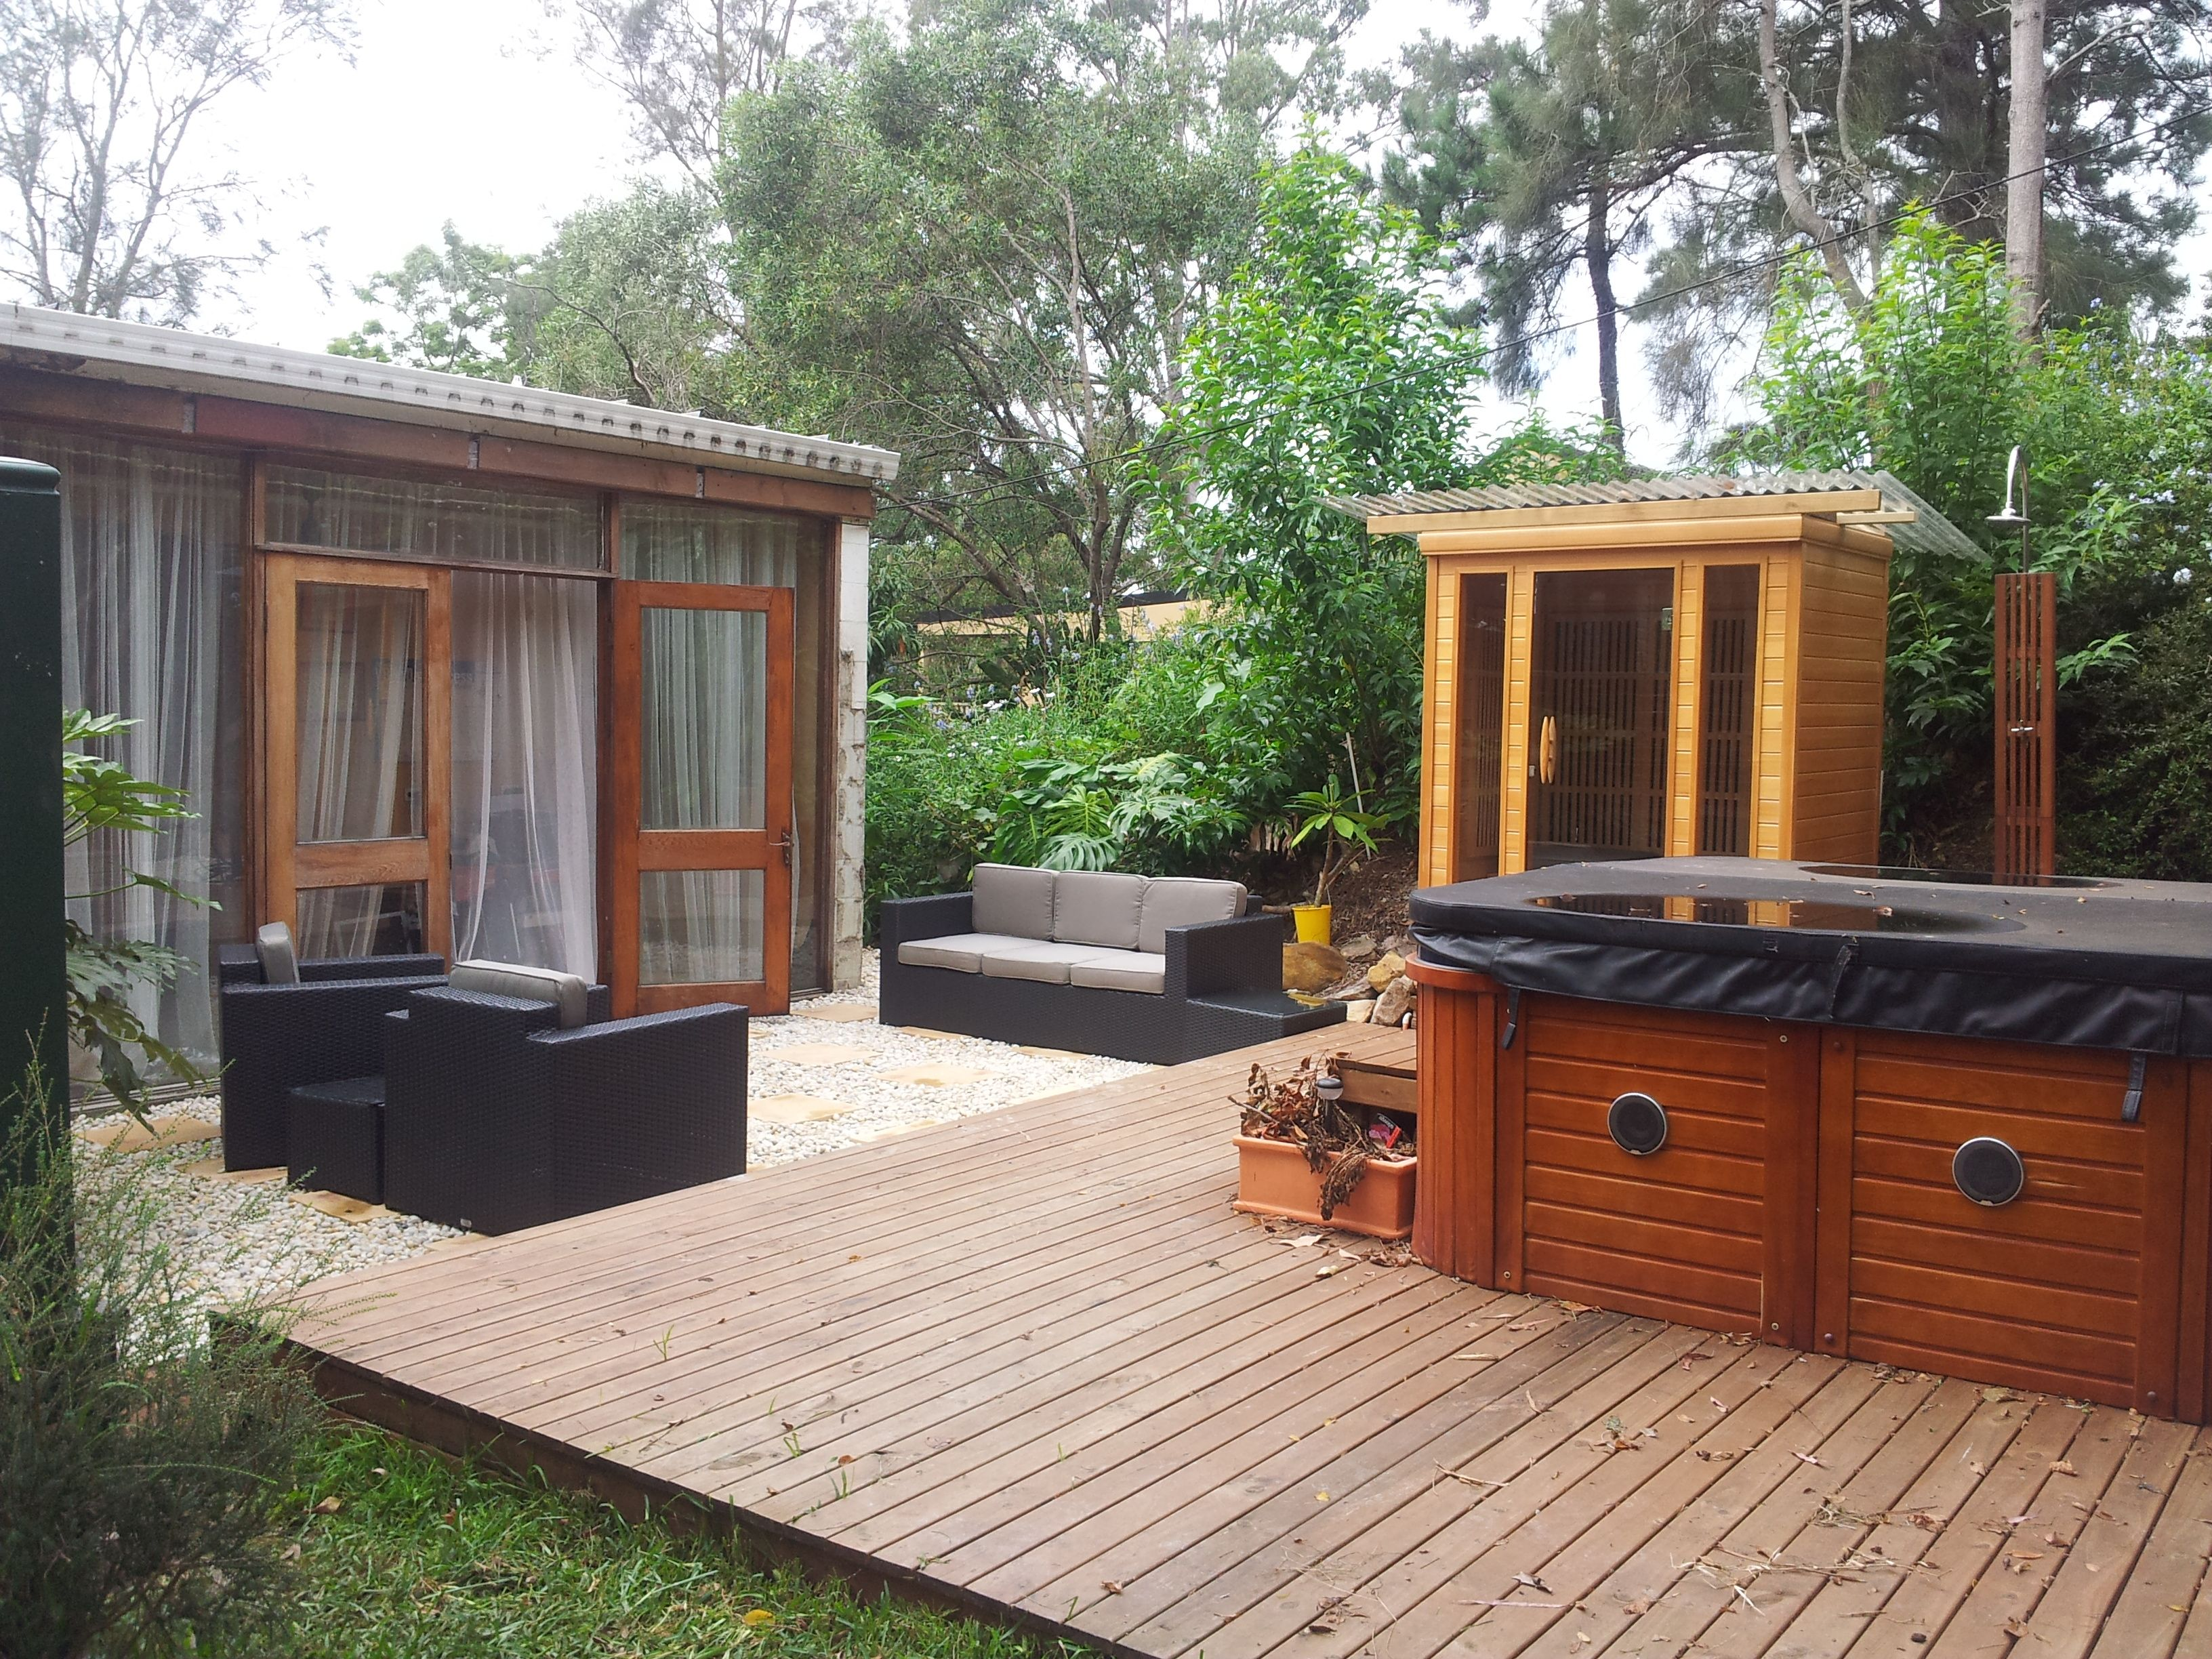 Outdoor Area, Sauna, Spa Deck, Pebbles Pavers